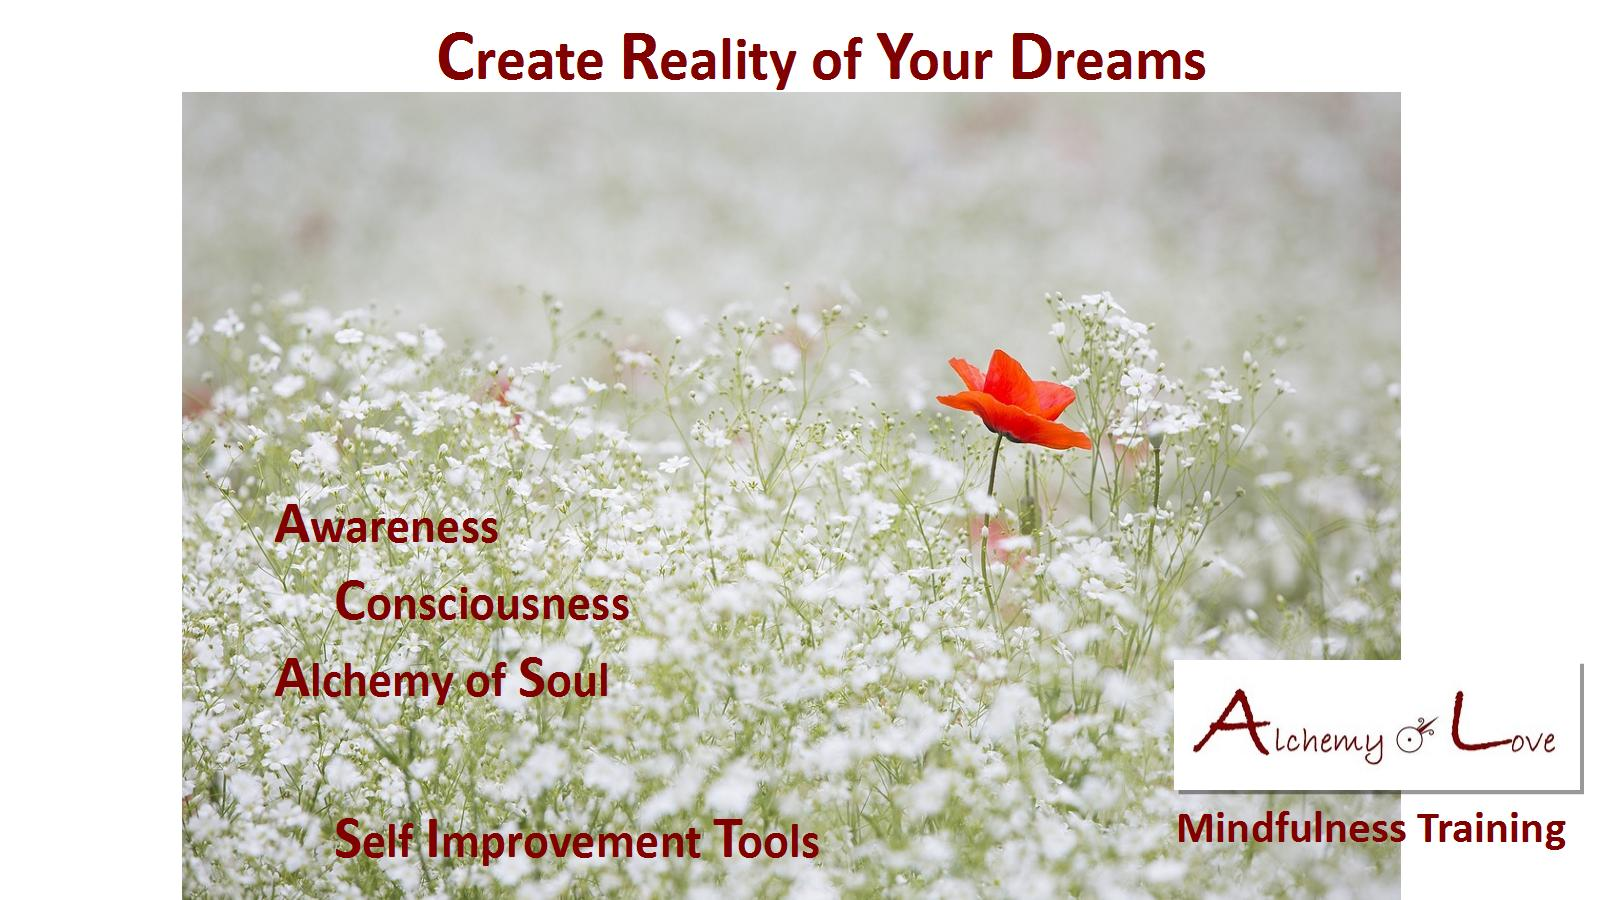 divergent thinking: create reality of your dreams